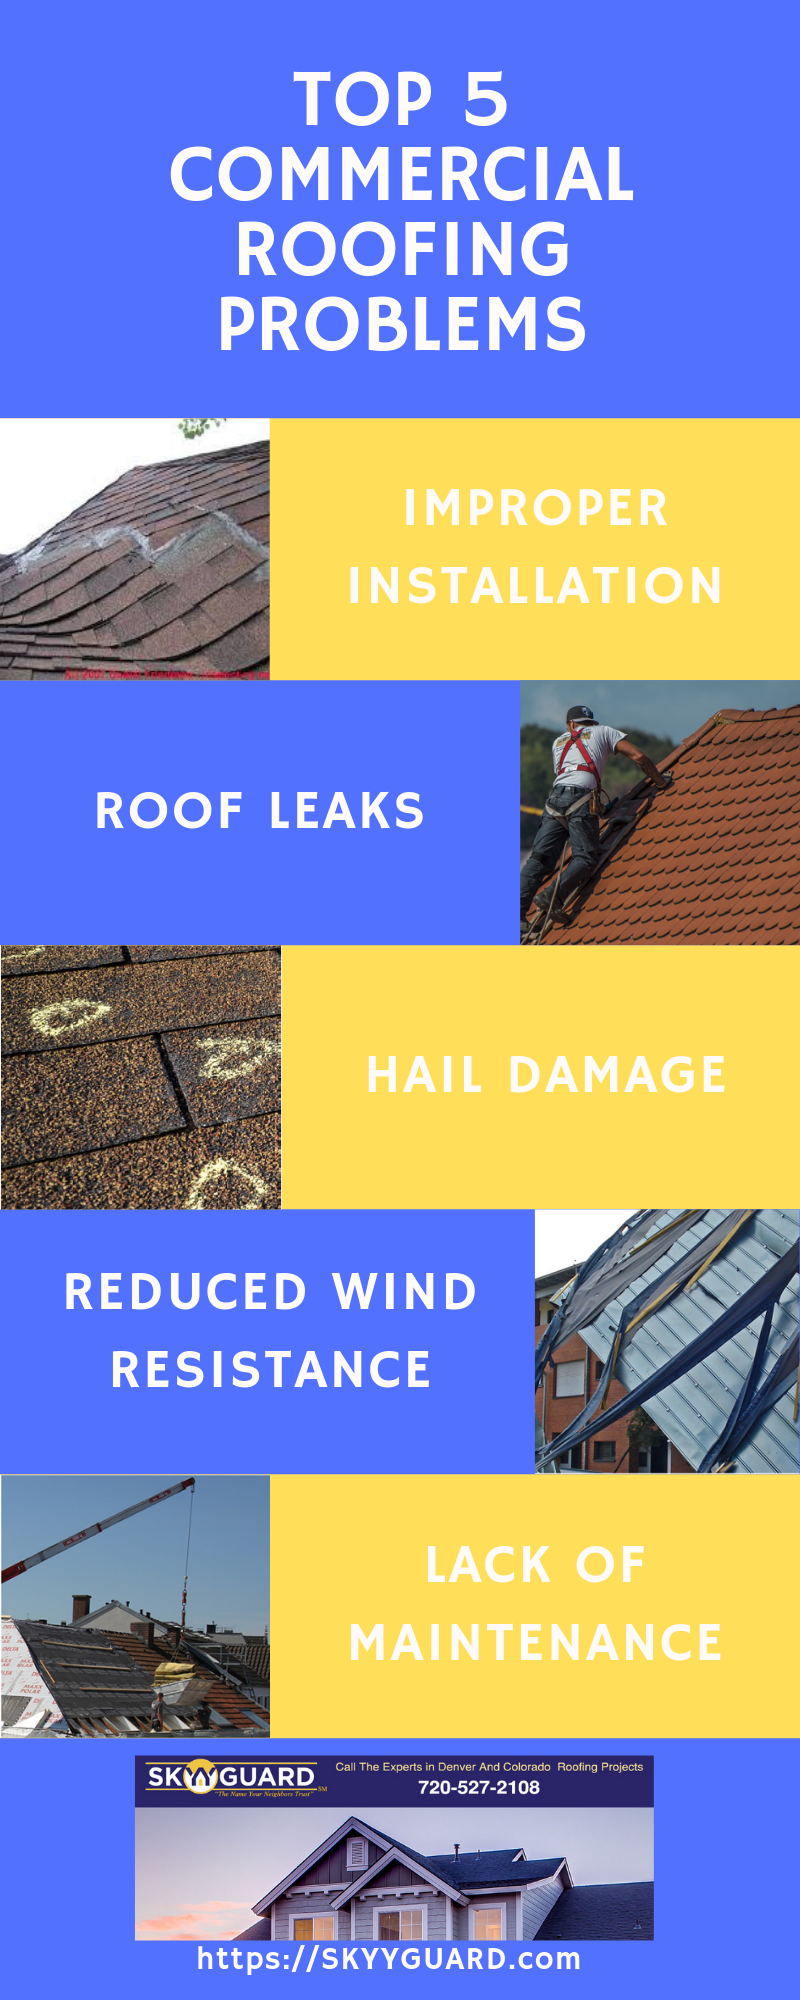 Top 5 Commercial Roofing Problems Skyyguard Commercial Roofing Roof Problems Roofing